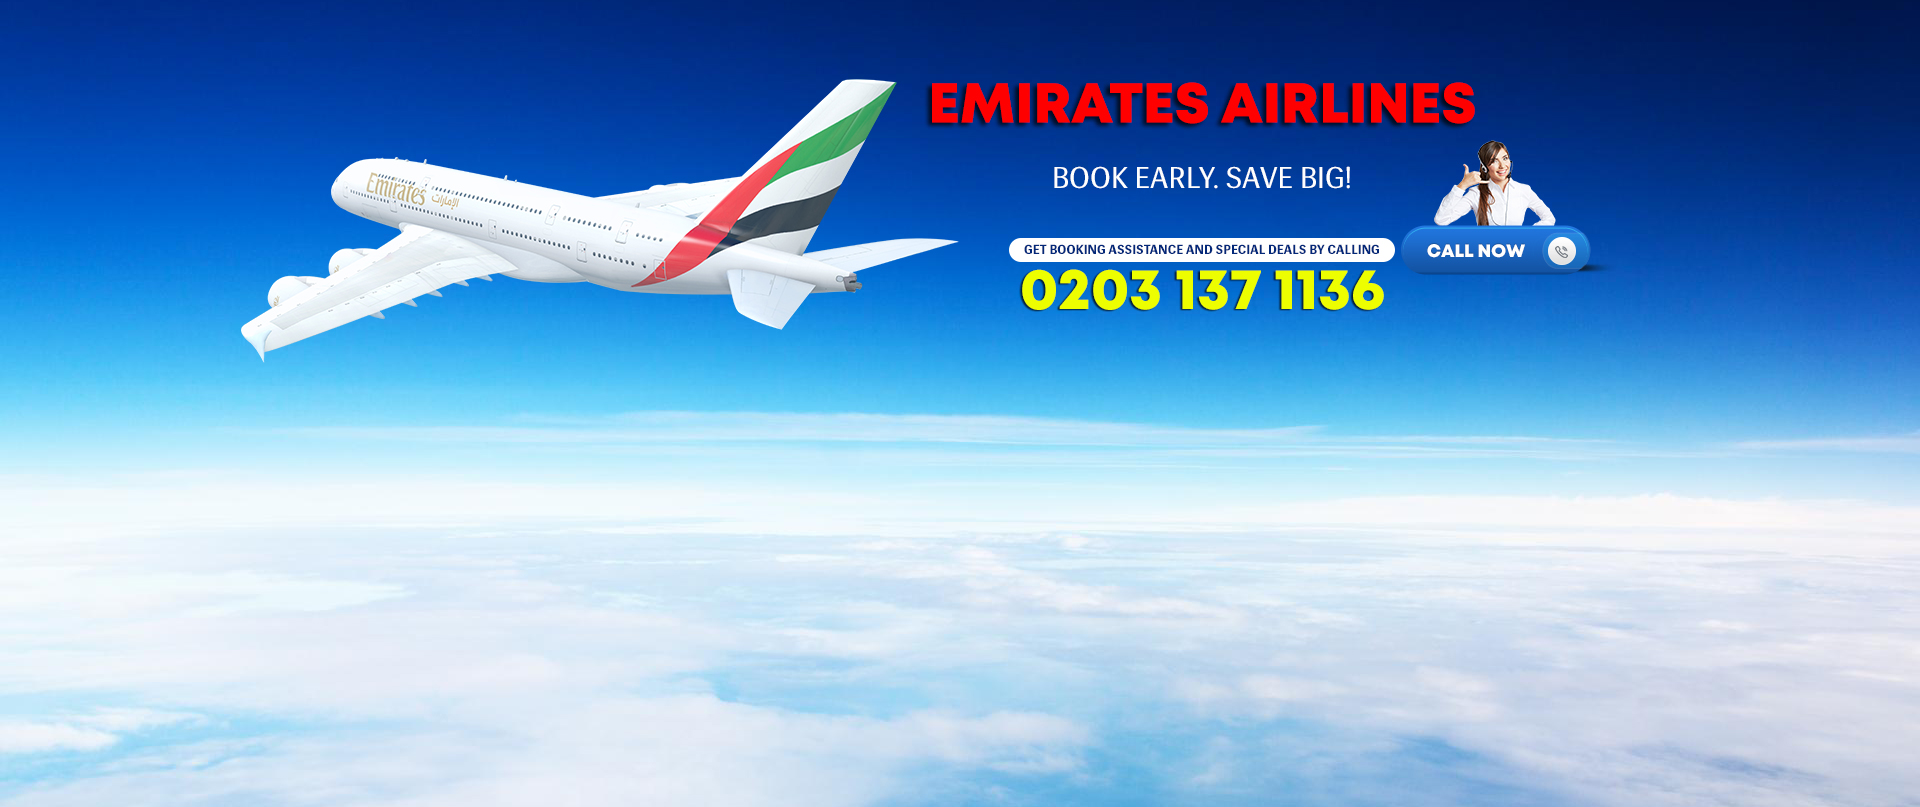 Emirates Airlines Reservation